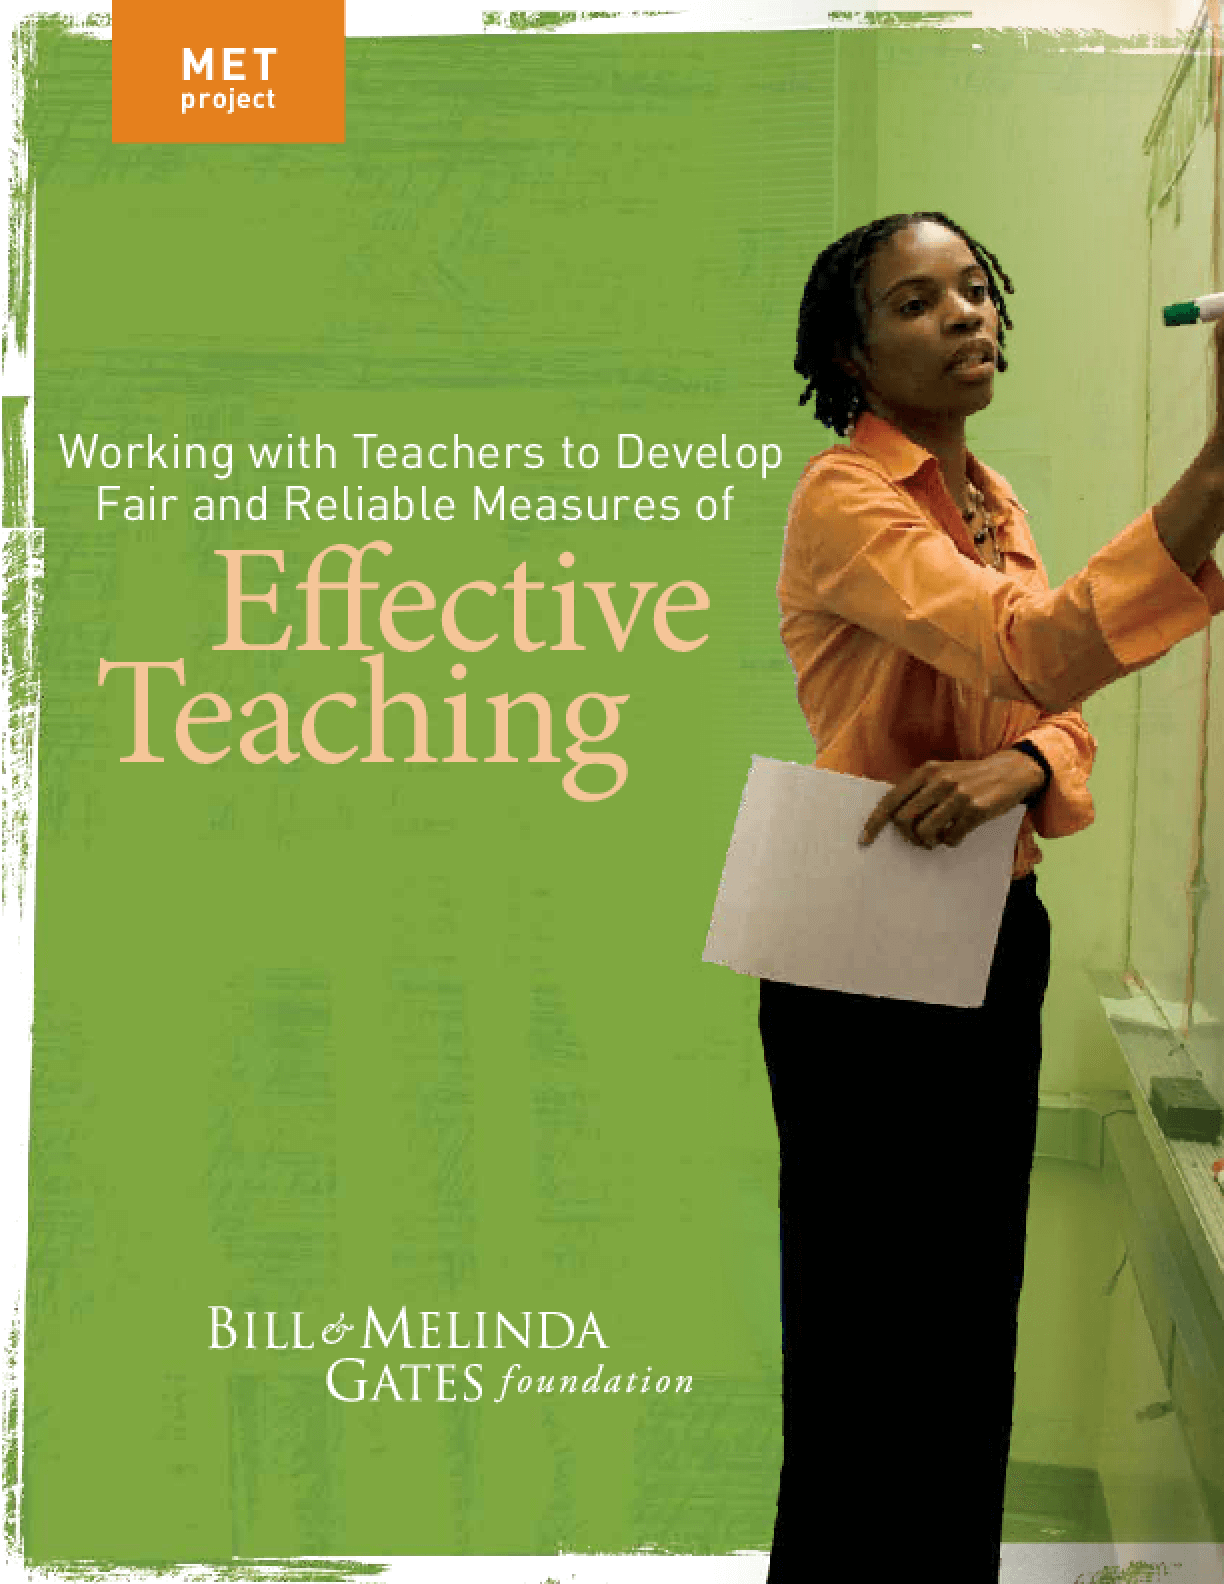 Working With Teachers to Develop Fair and Reliable Measures of Effective Teaching